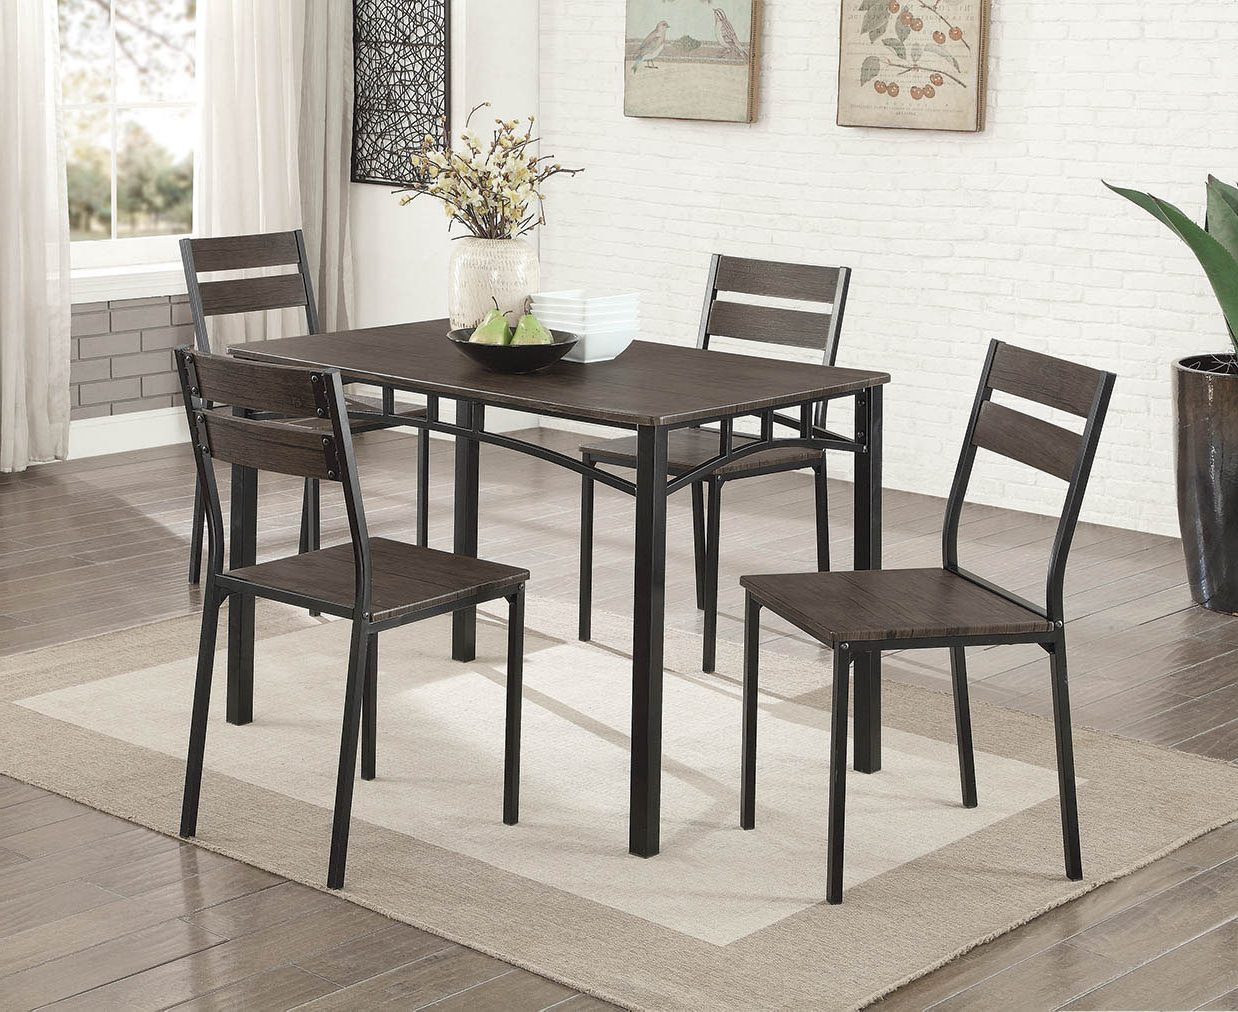 Most Recently Released Gracie Oaks Autberry 5 Piece Dining Set & Reviews (View 11 of 25)